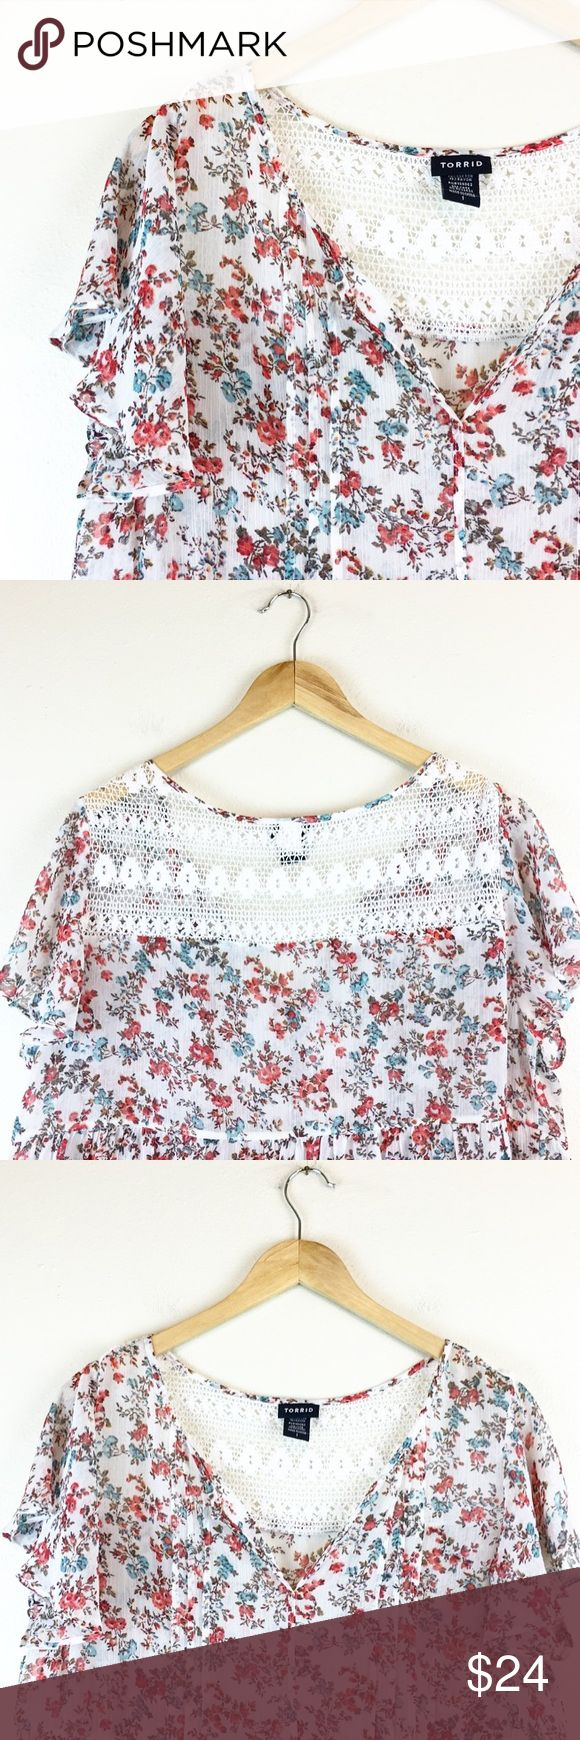 """Torrid Women's Floral Short Sleeve Blouse Size 1 Torrid Women's Floral Blouse  Size: 1  Measurements:  Bust - 21"""" armpit to armpit, laying flat Length - 28"""" taken from back of garment, top to bottom  Great Pre Loved Condition!  HAPPY POSHING! torrid Tops Tees - Short Sleeve"""